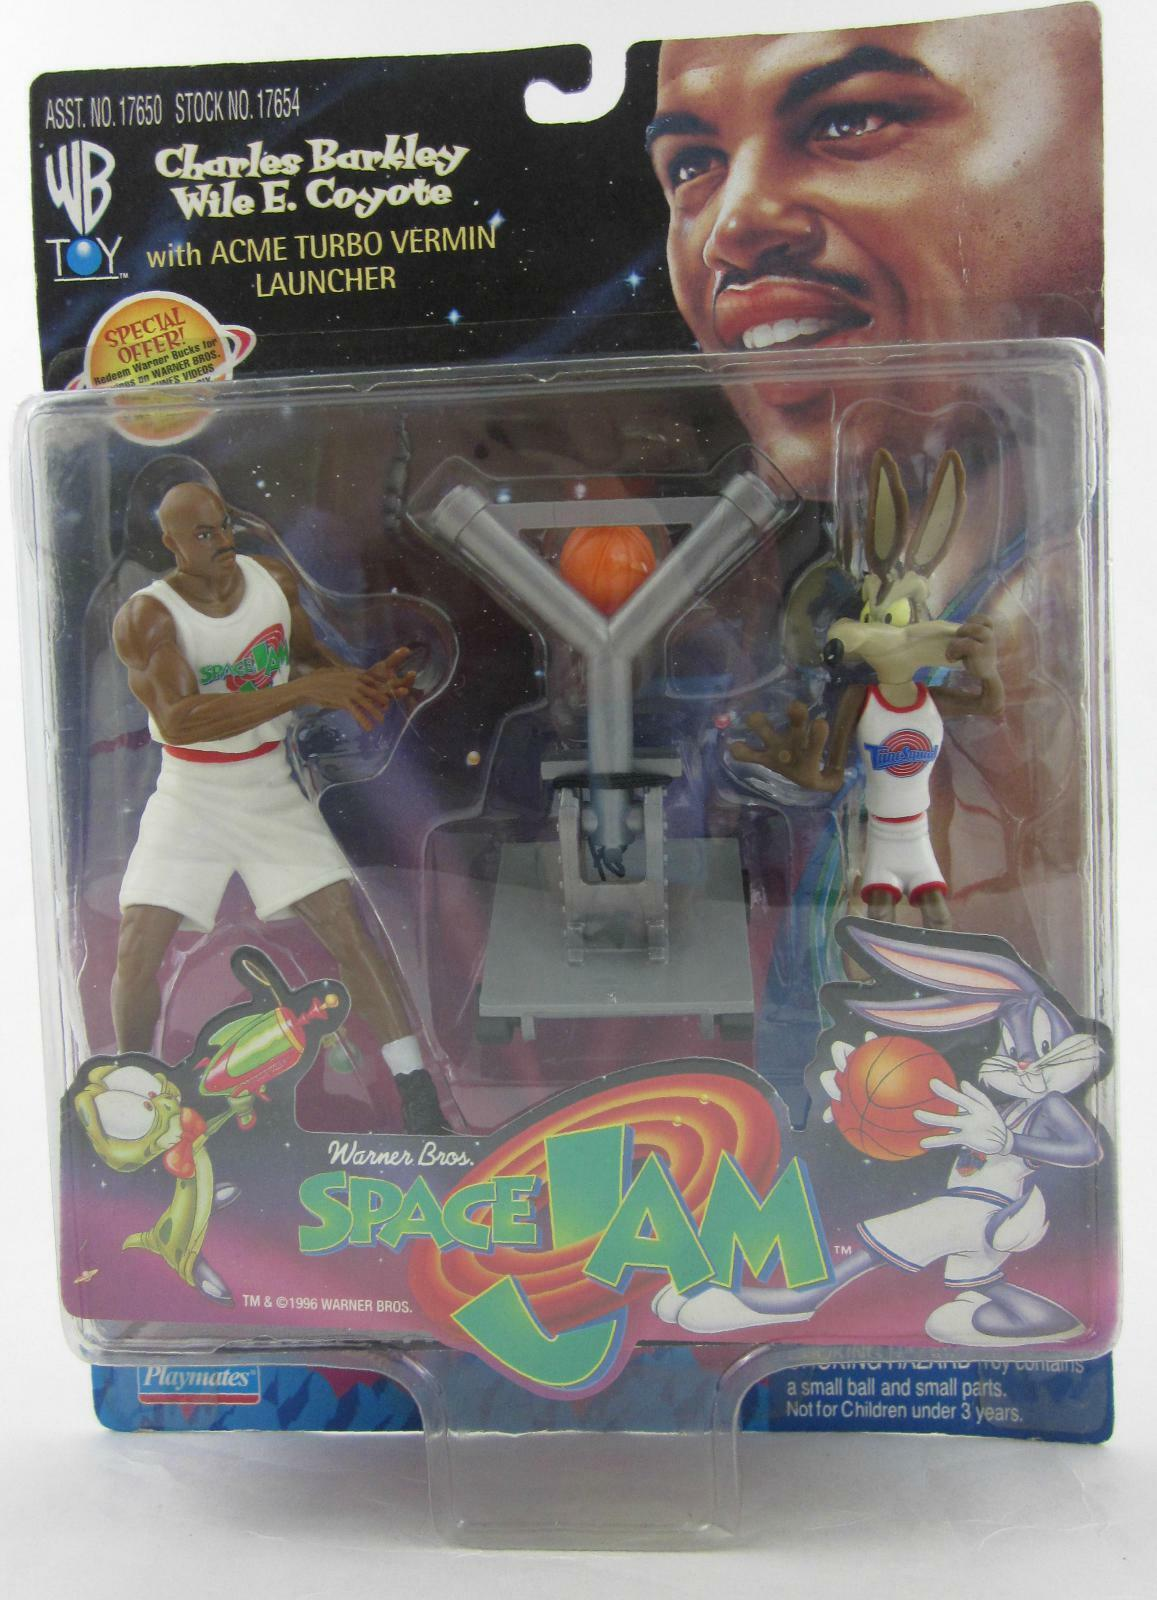 JAM Charles Barkley Wile SPACE Coyote Acción Figura Set Acme E. Turbo Lanzador